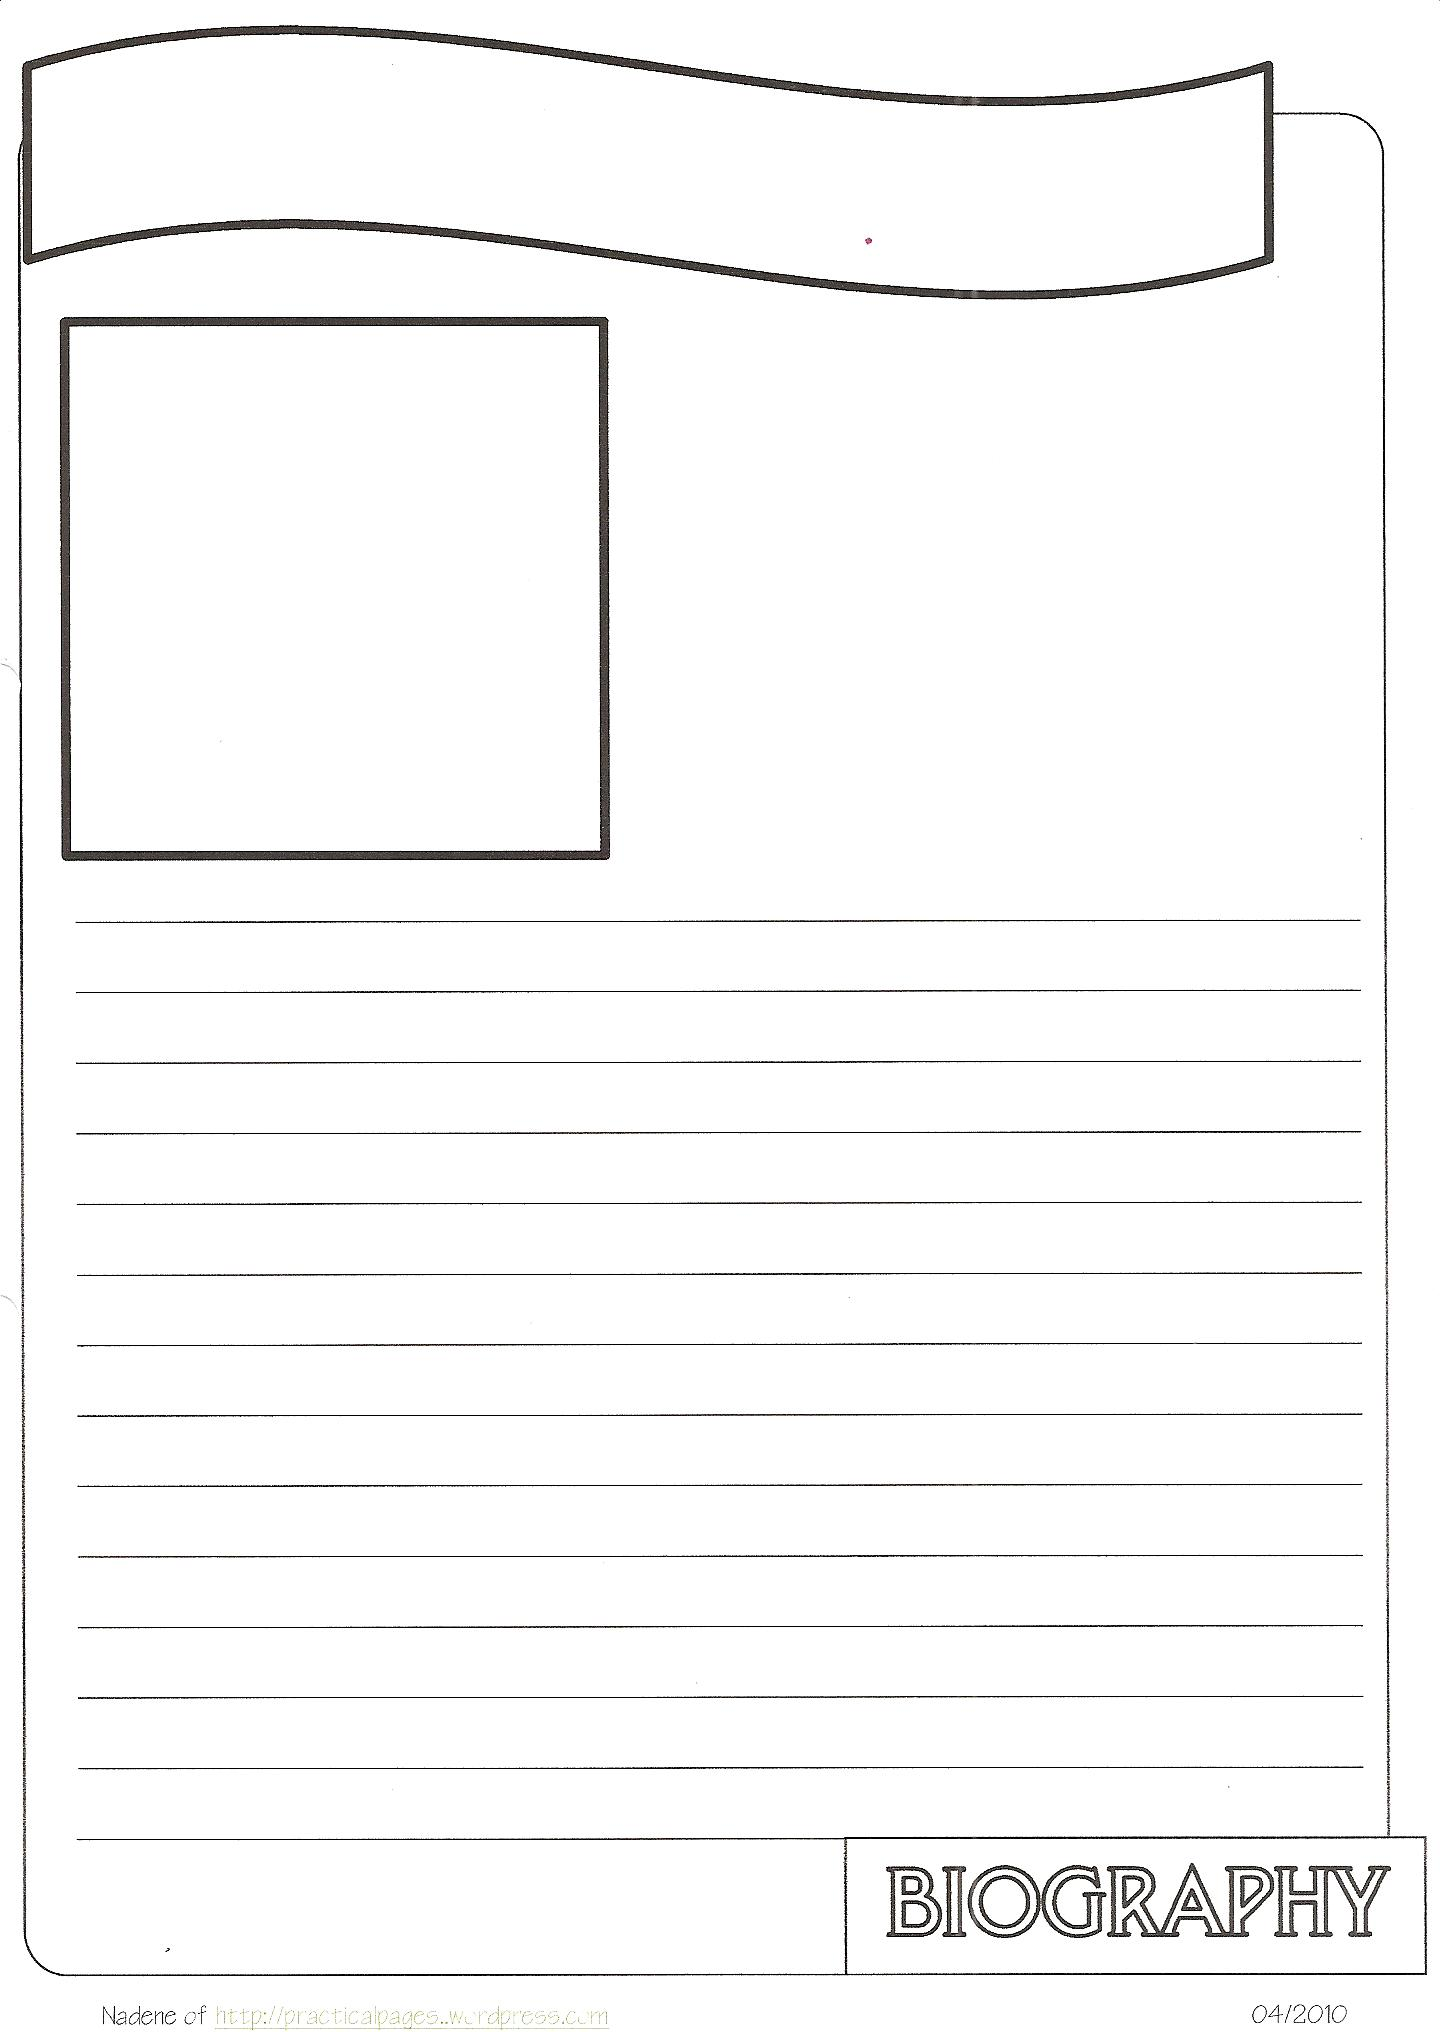 biography notebook pages